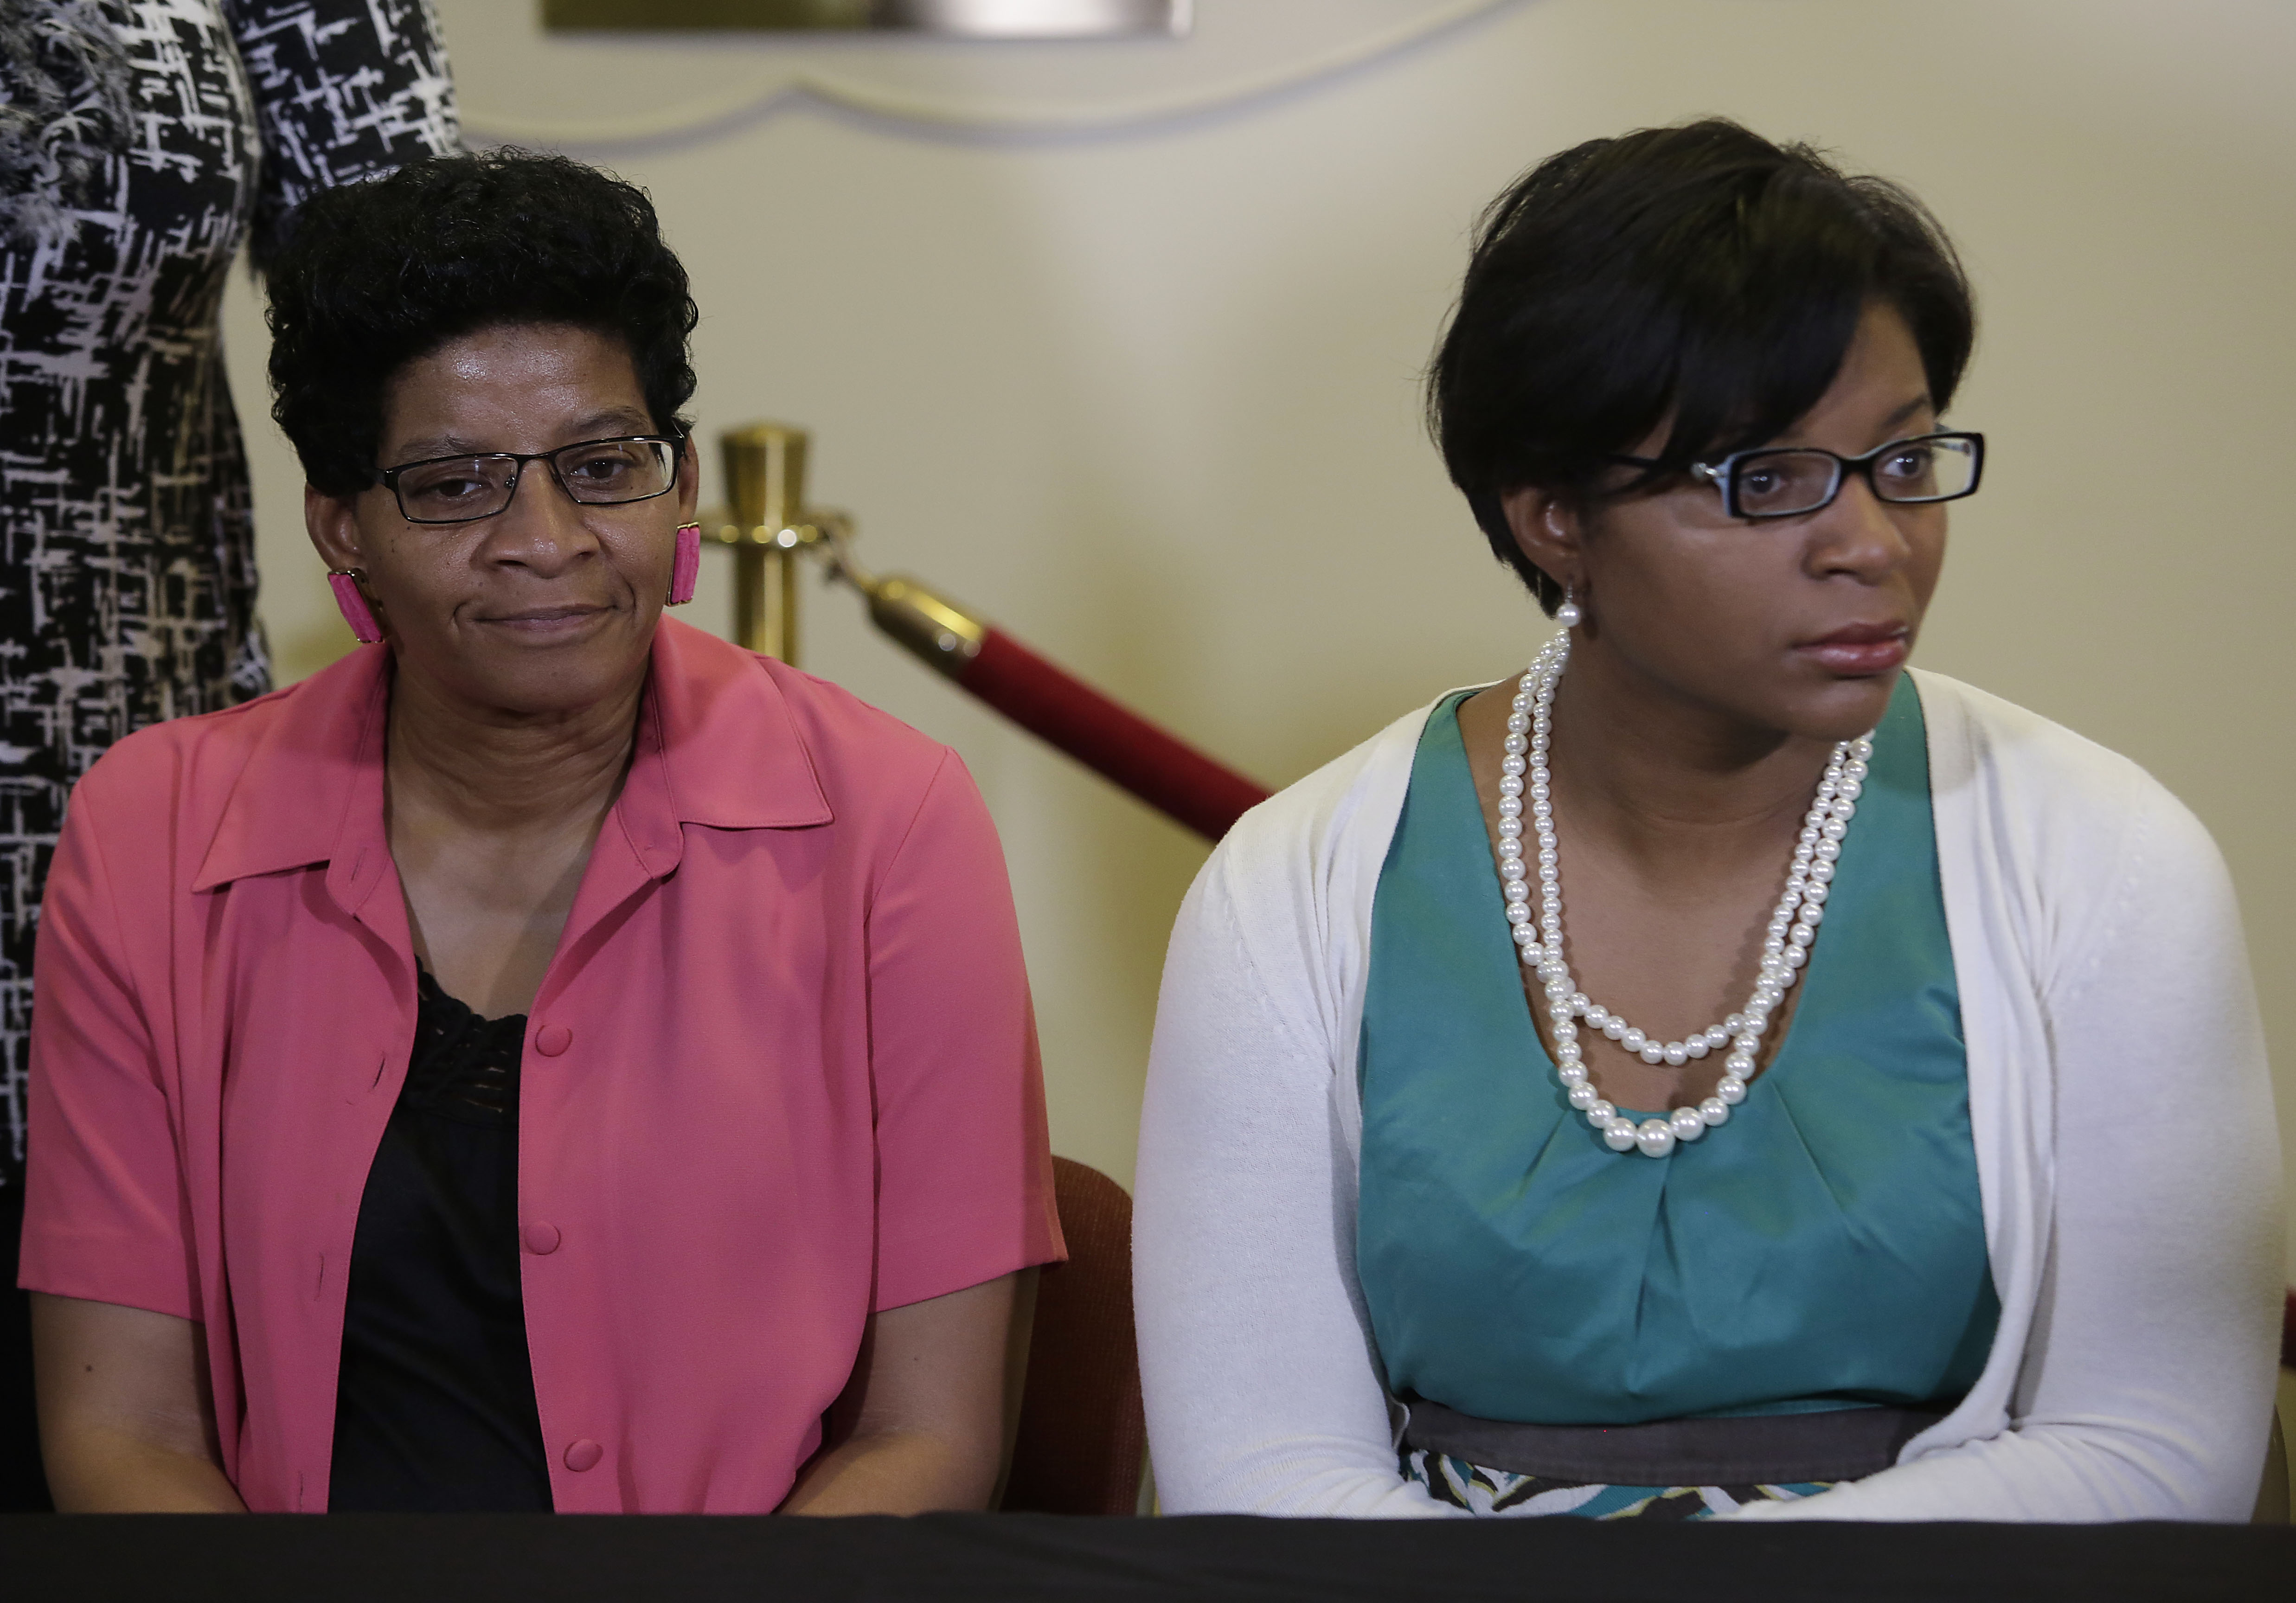 The mother of Sandra Bland, Geneva Reed-Veal, left, and sister Sharon Cooper, right, attend a news conference at DuPage AME Church July 22, 2015 in Lisle, Illinois. Photo by Joshua Lott/Getty Images